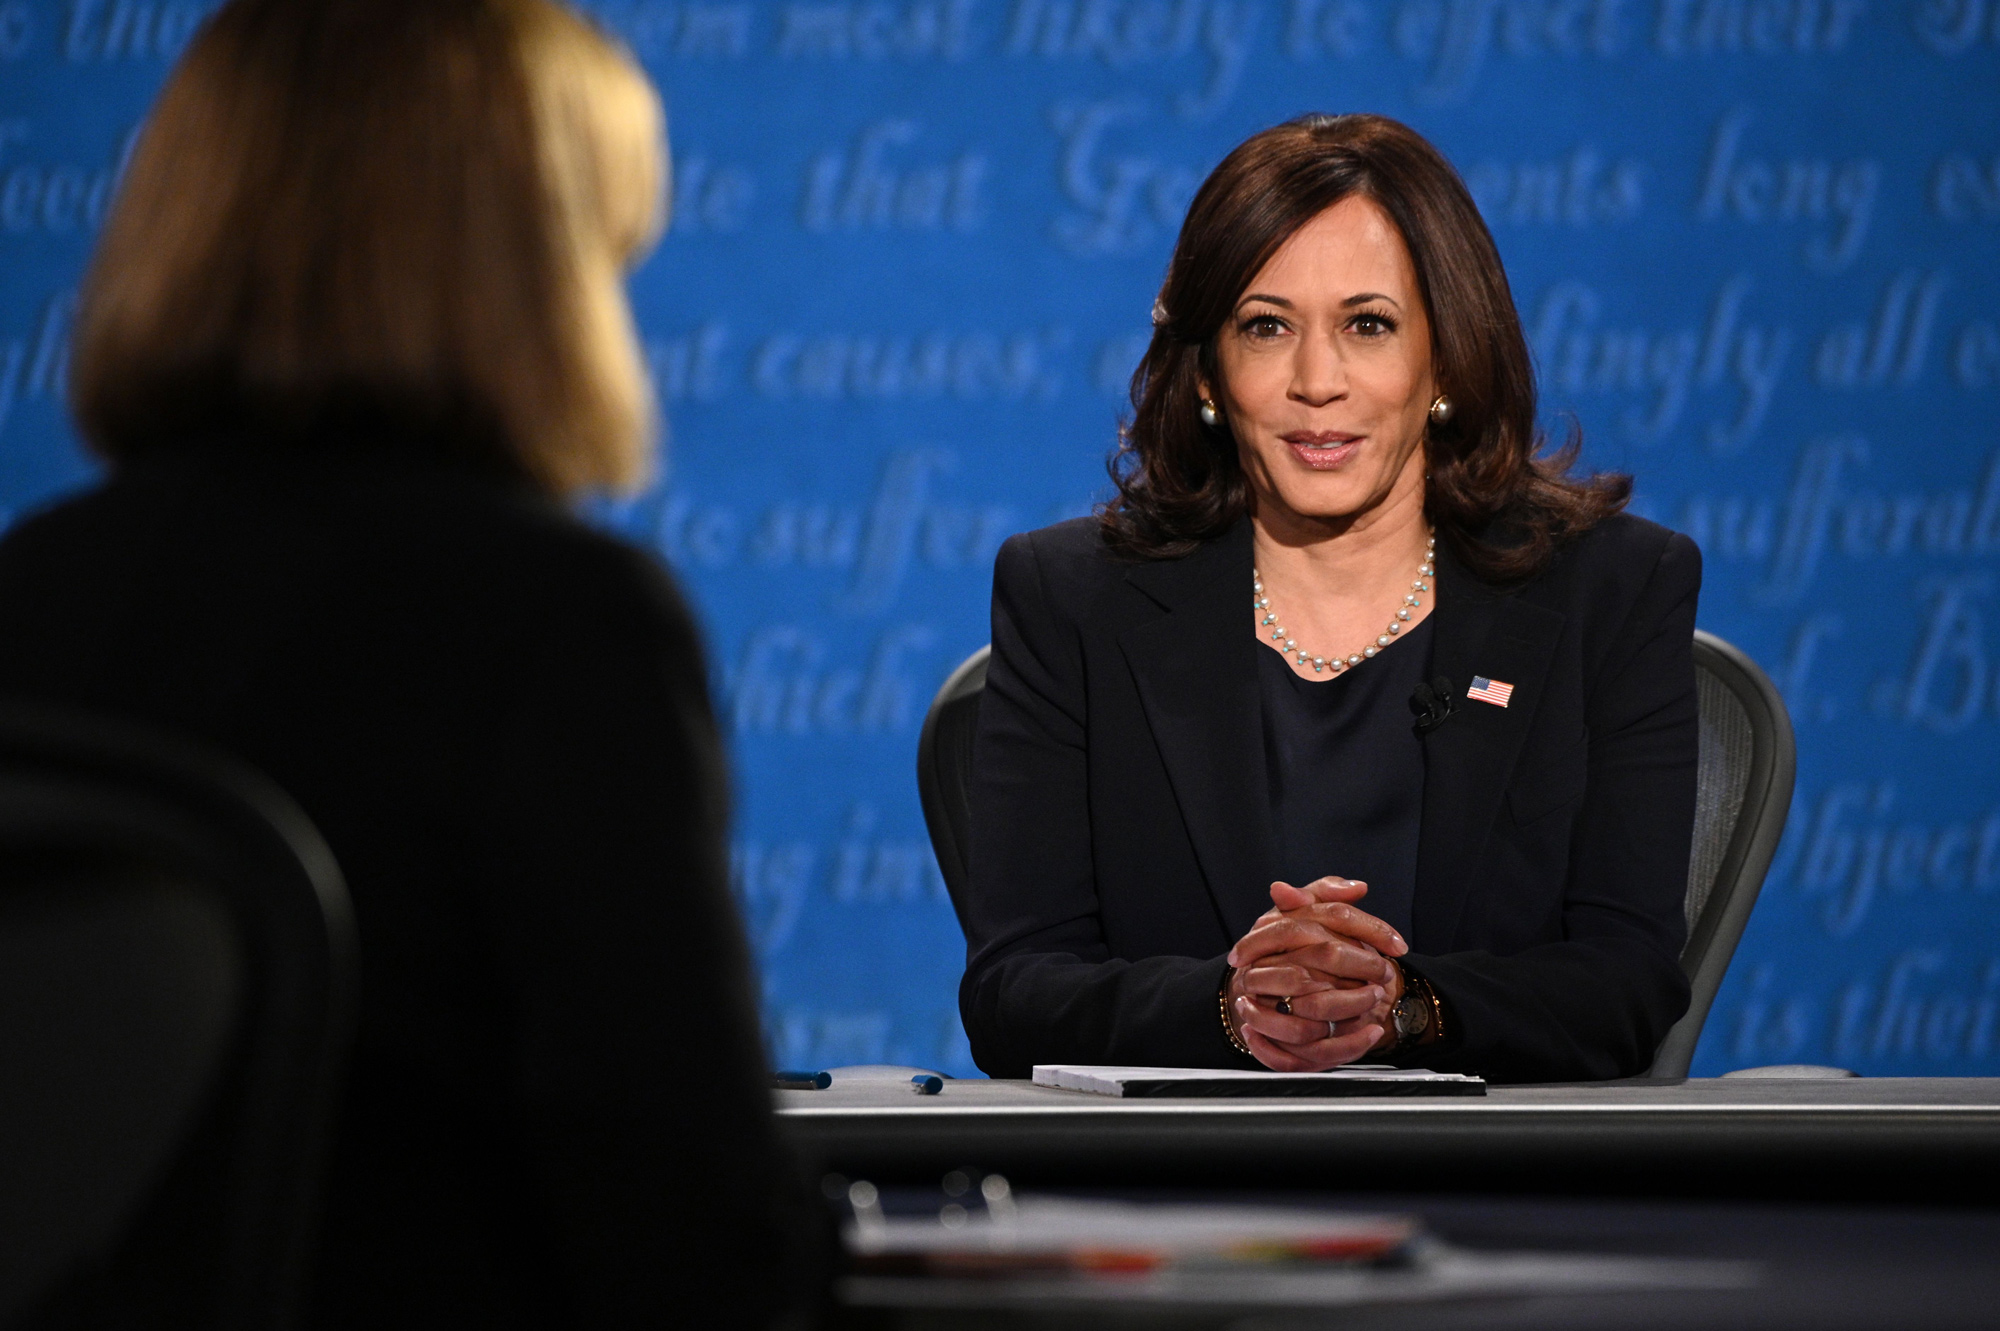 Democratic vice presidential nominee Kamala Harris arrives on stage for the vice presidential debate in Kingsbury Hall at the University of Utah on October 7 in Salt Lake City, Utah.